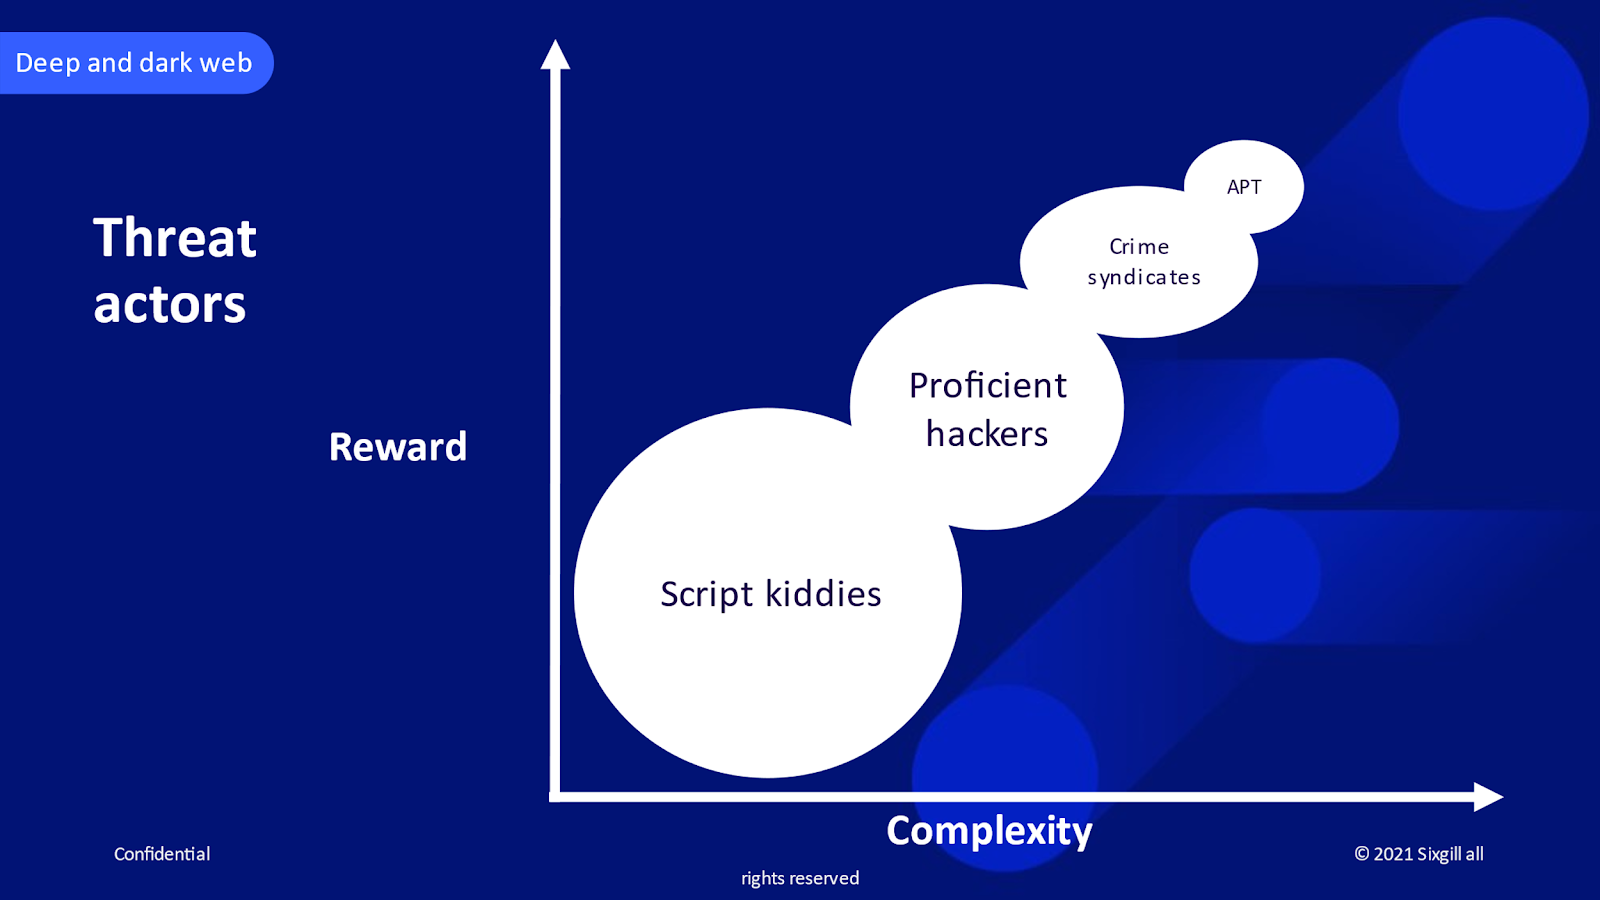 The levels of complexity of various types of threat actors and the scope of the rewards they typically enjoy